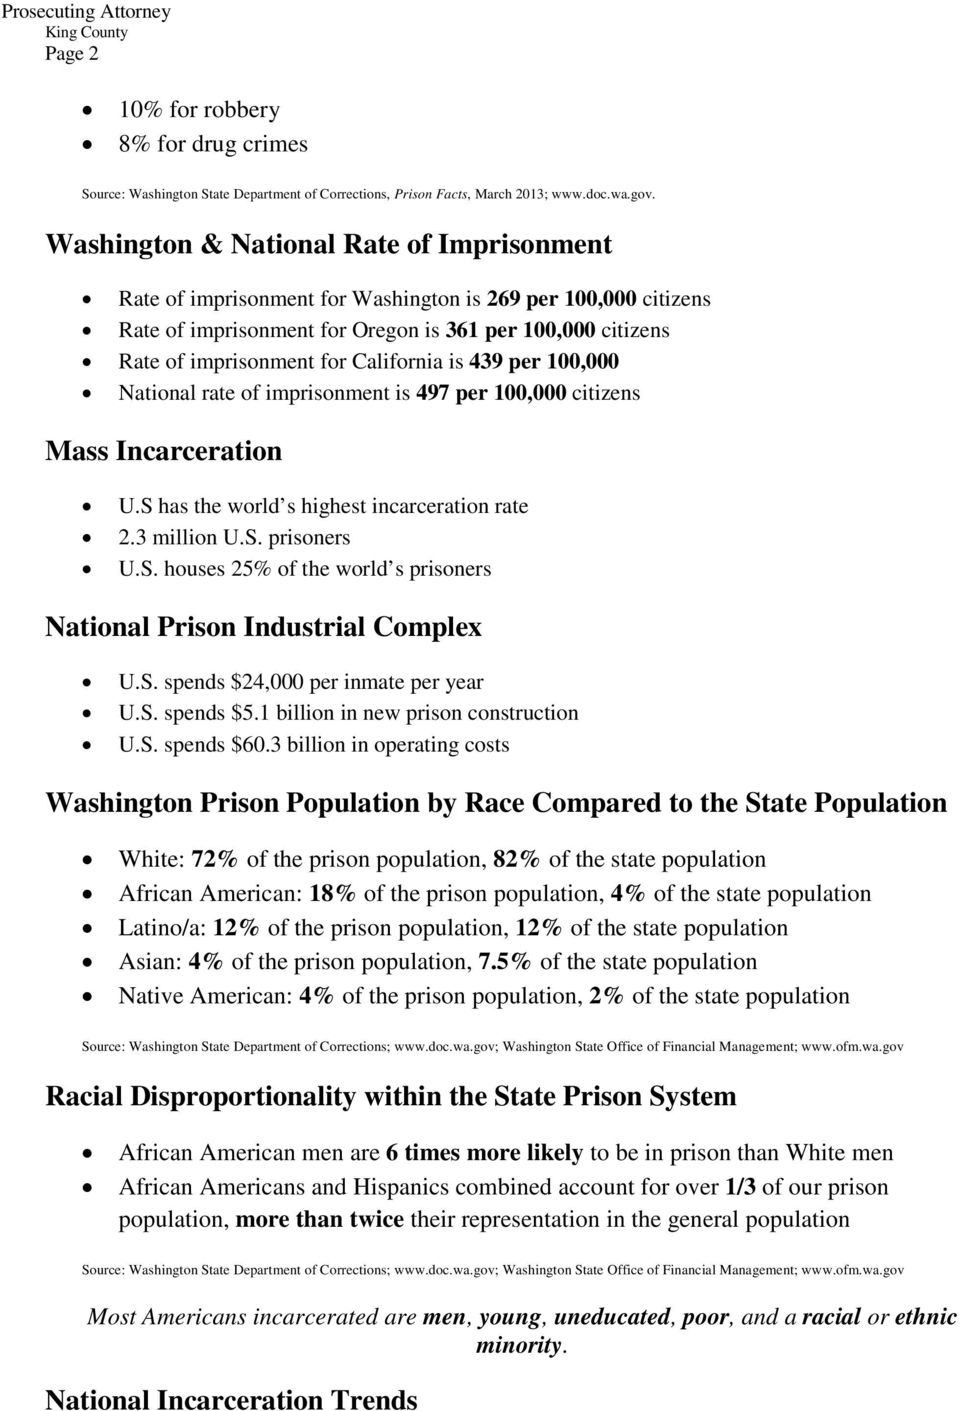 California is 439 per 100,000 National rate of imprisonment is 497 per 100,000 citizens Mass Incarceration U.S has the world s highest incarceration rate 2.3 million U.S. prisoners U.S. houses 25% of the world s prisoners National Prison Industrial Complex U.